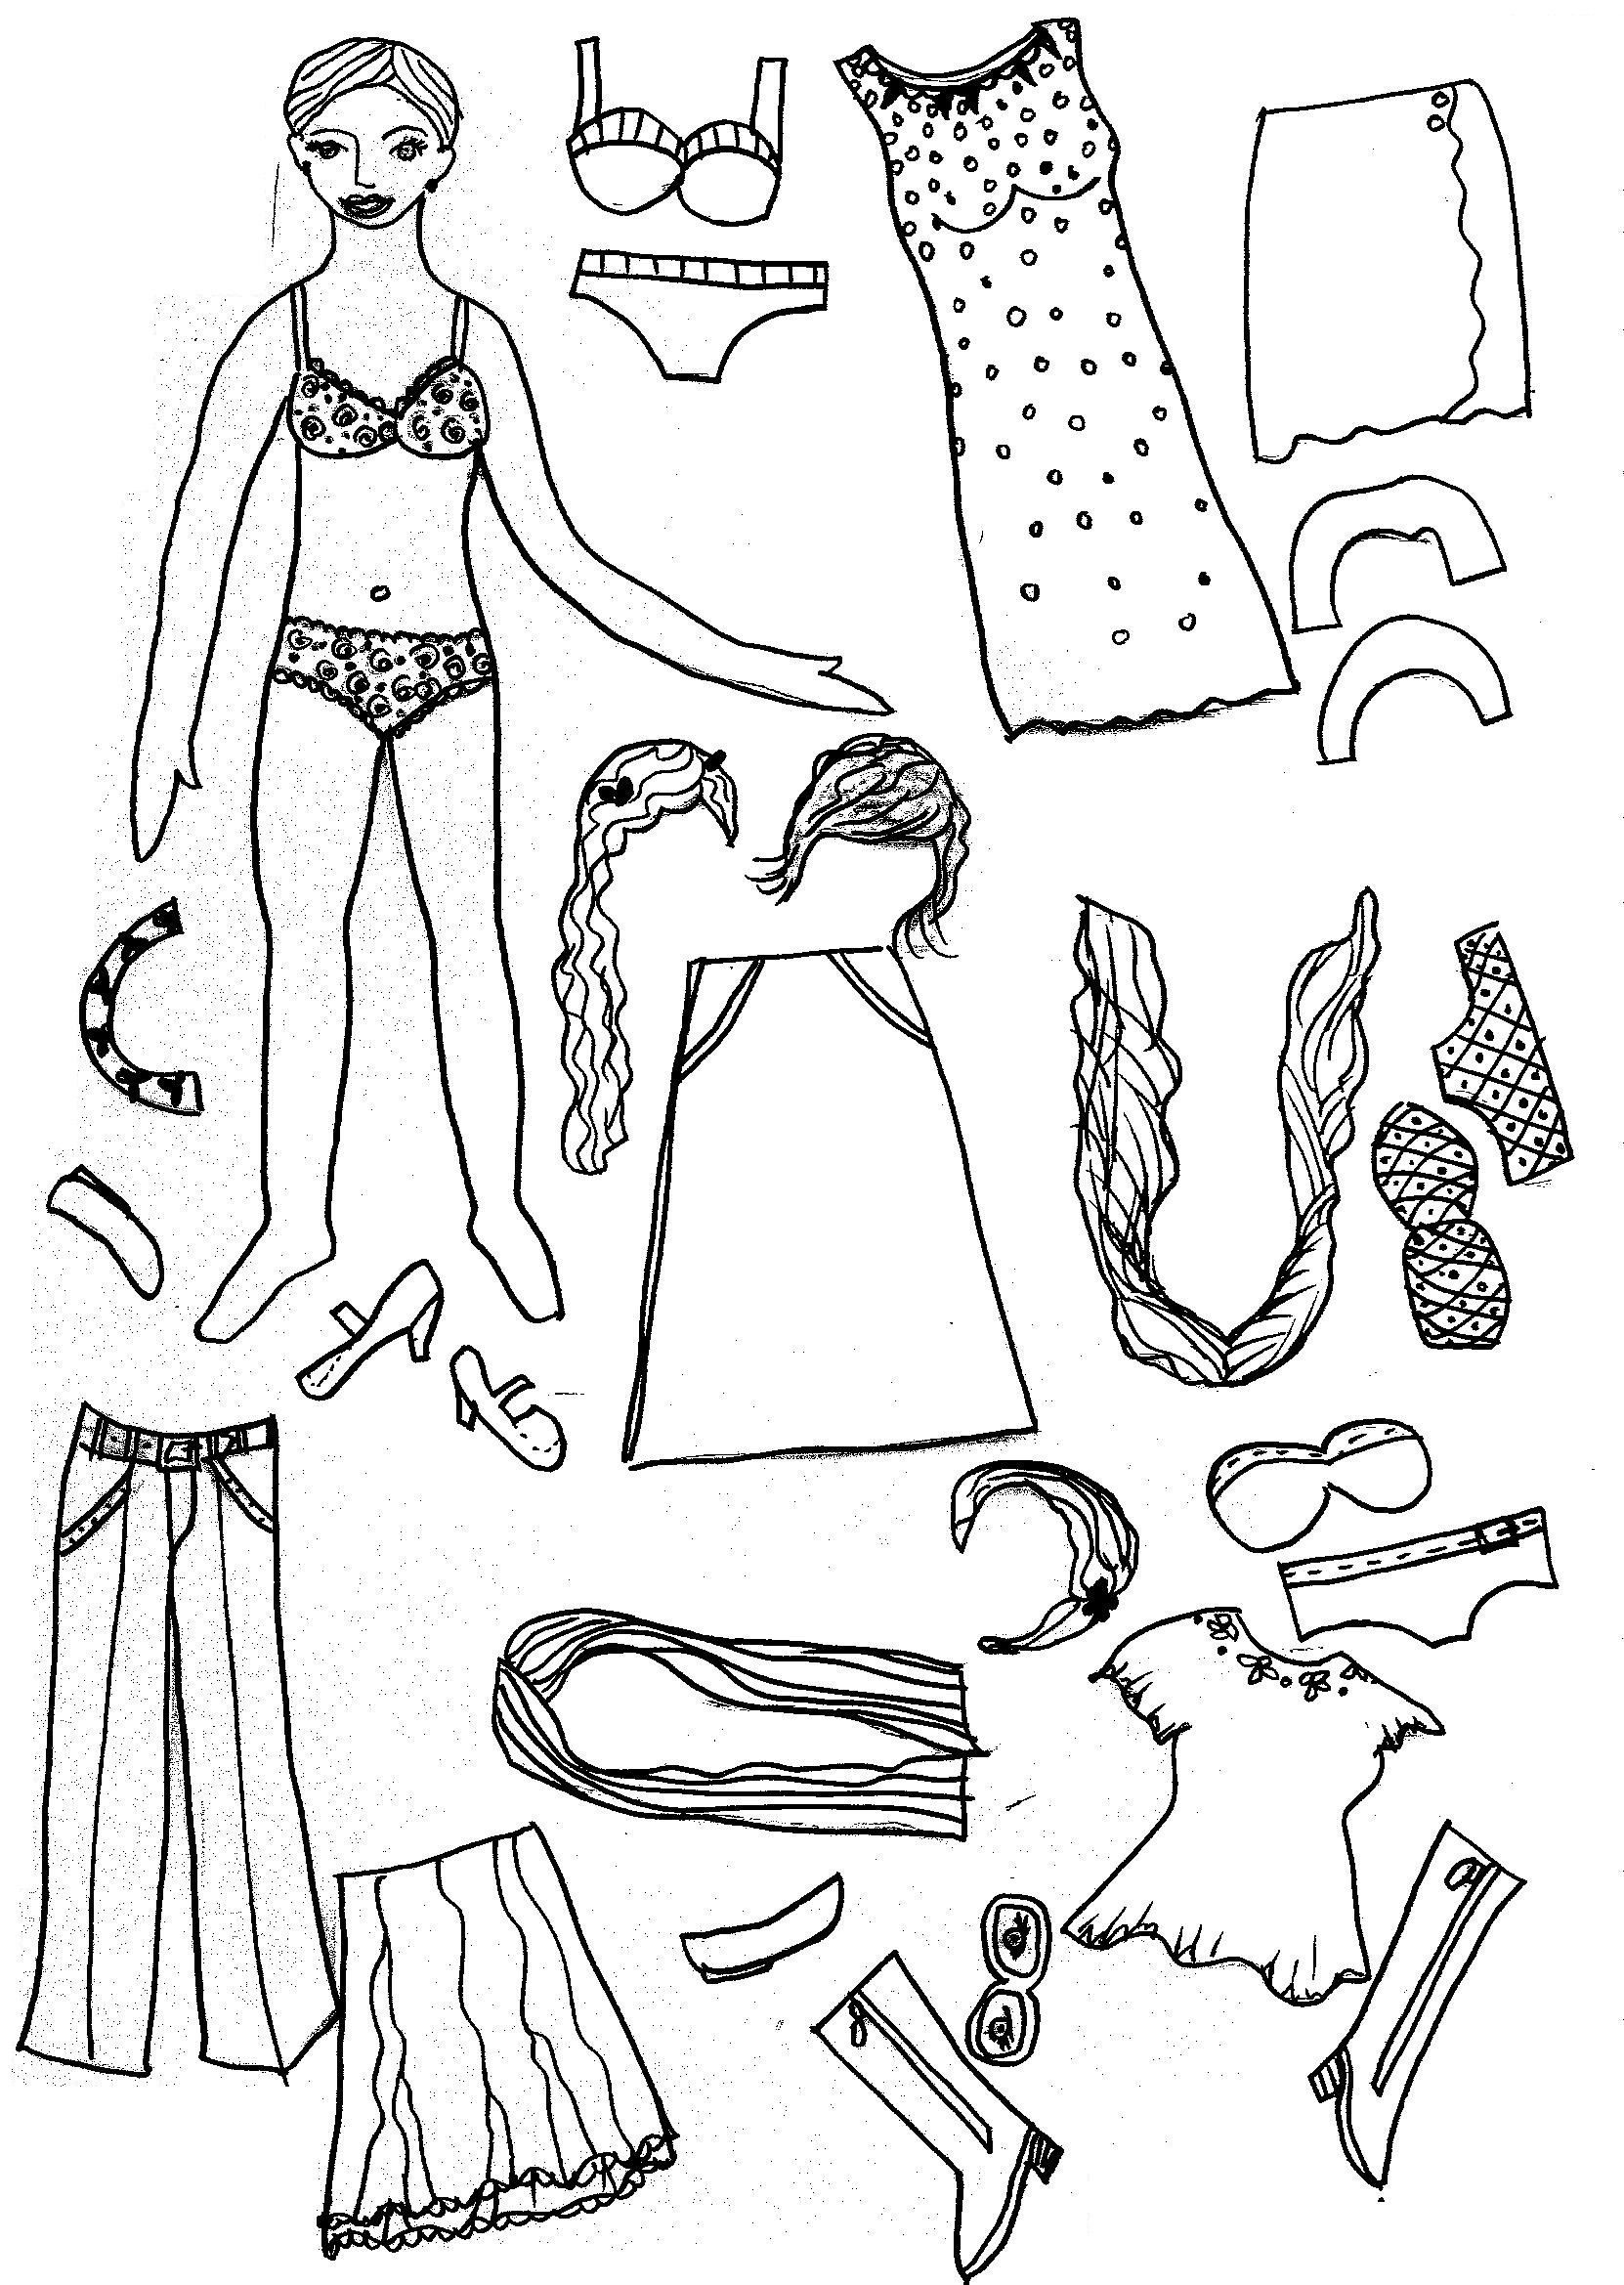 picture regarding Free Printable Paper Dolls Black and White called No cost Printable Paper Doll Coloring Web pages For Small children Pertaining